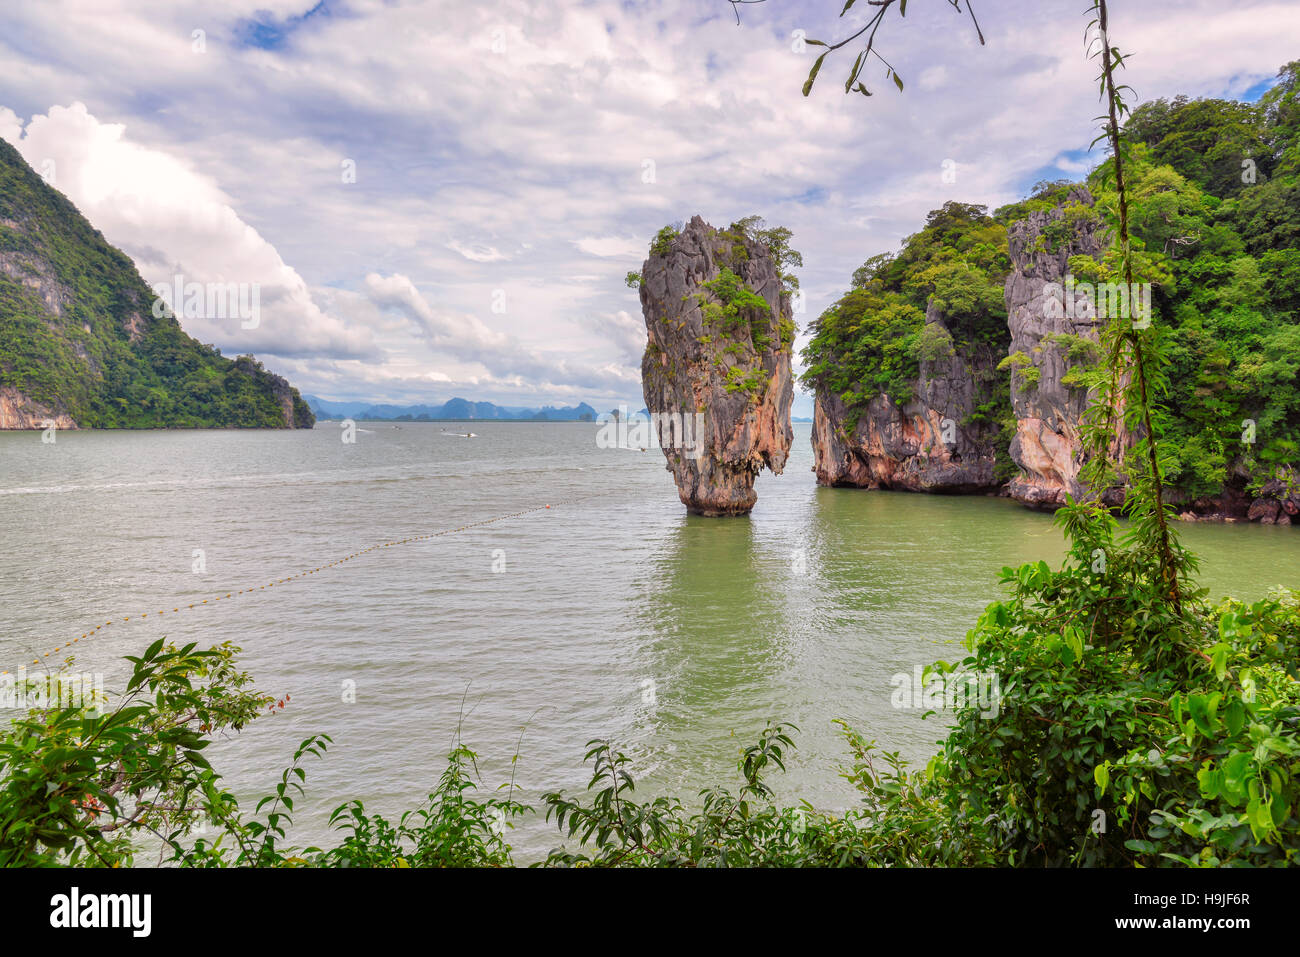 James Bond island in Thailand, (ko tapu) - Stock Image